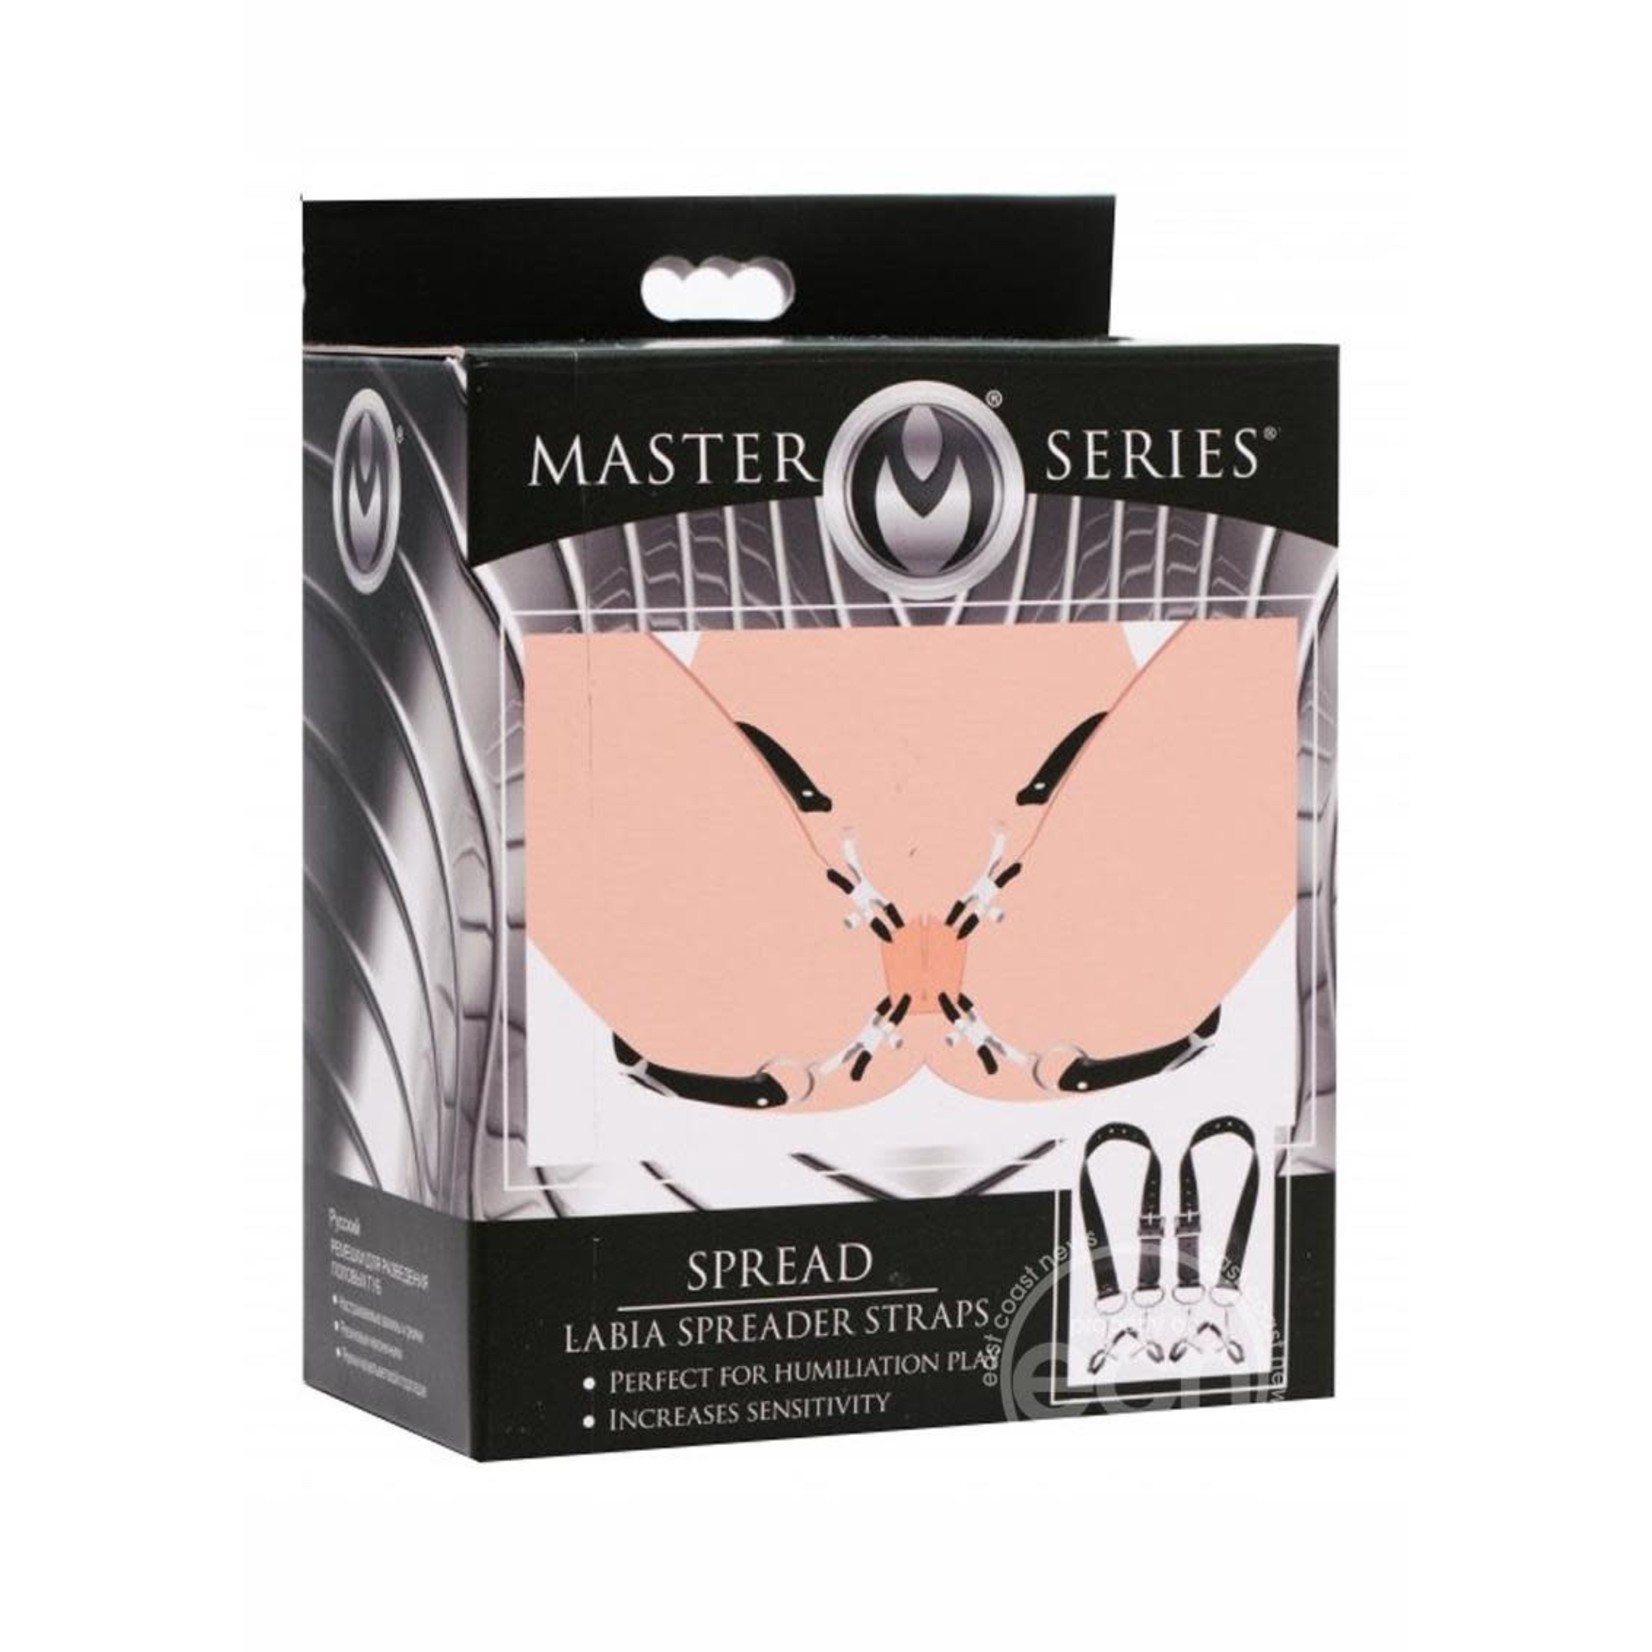 Master Series Spread Labia Spreader Straps with Clamps